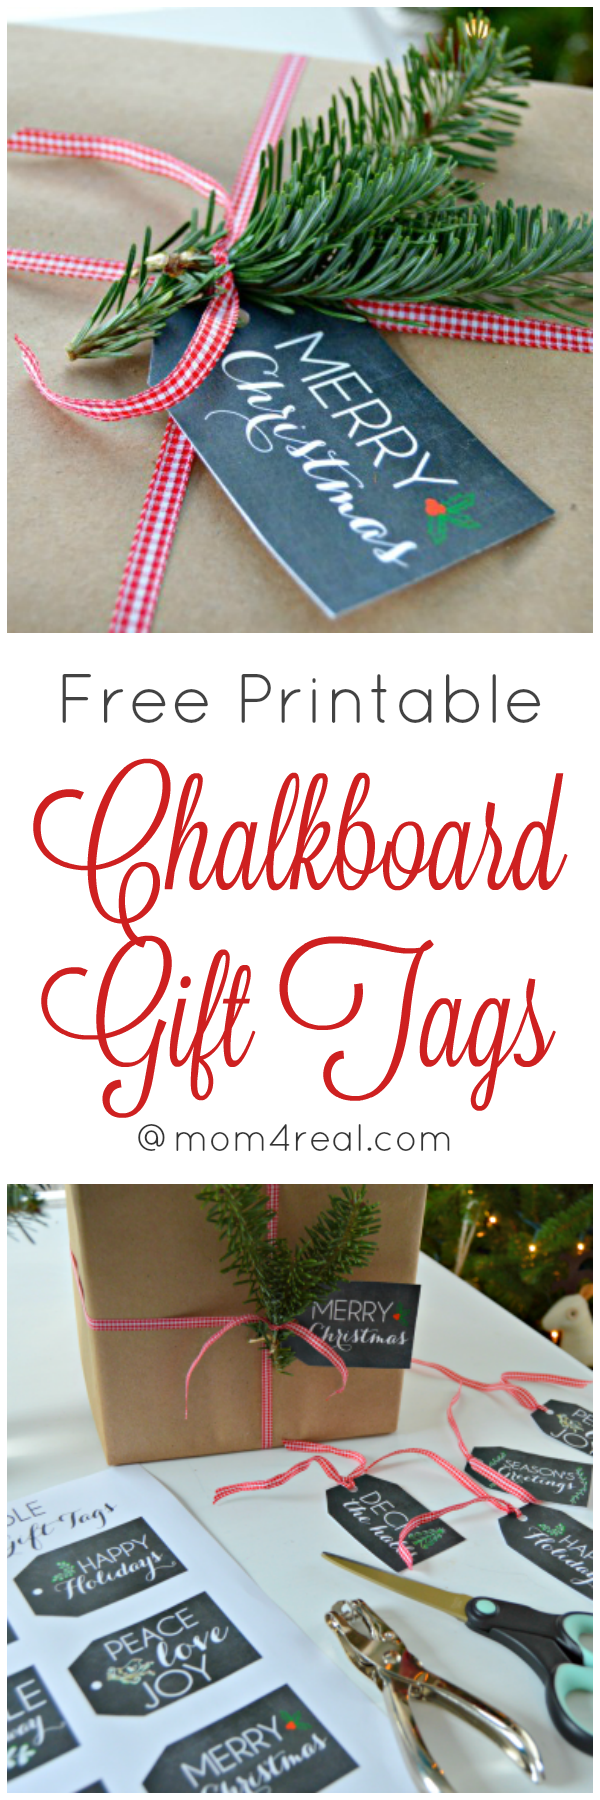 Free Printable Chalkboard Gift Tags for Christmas